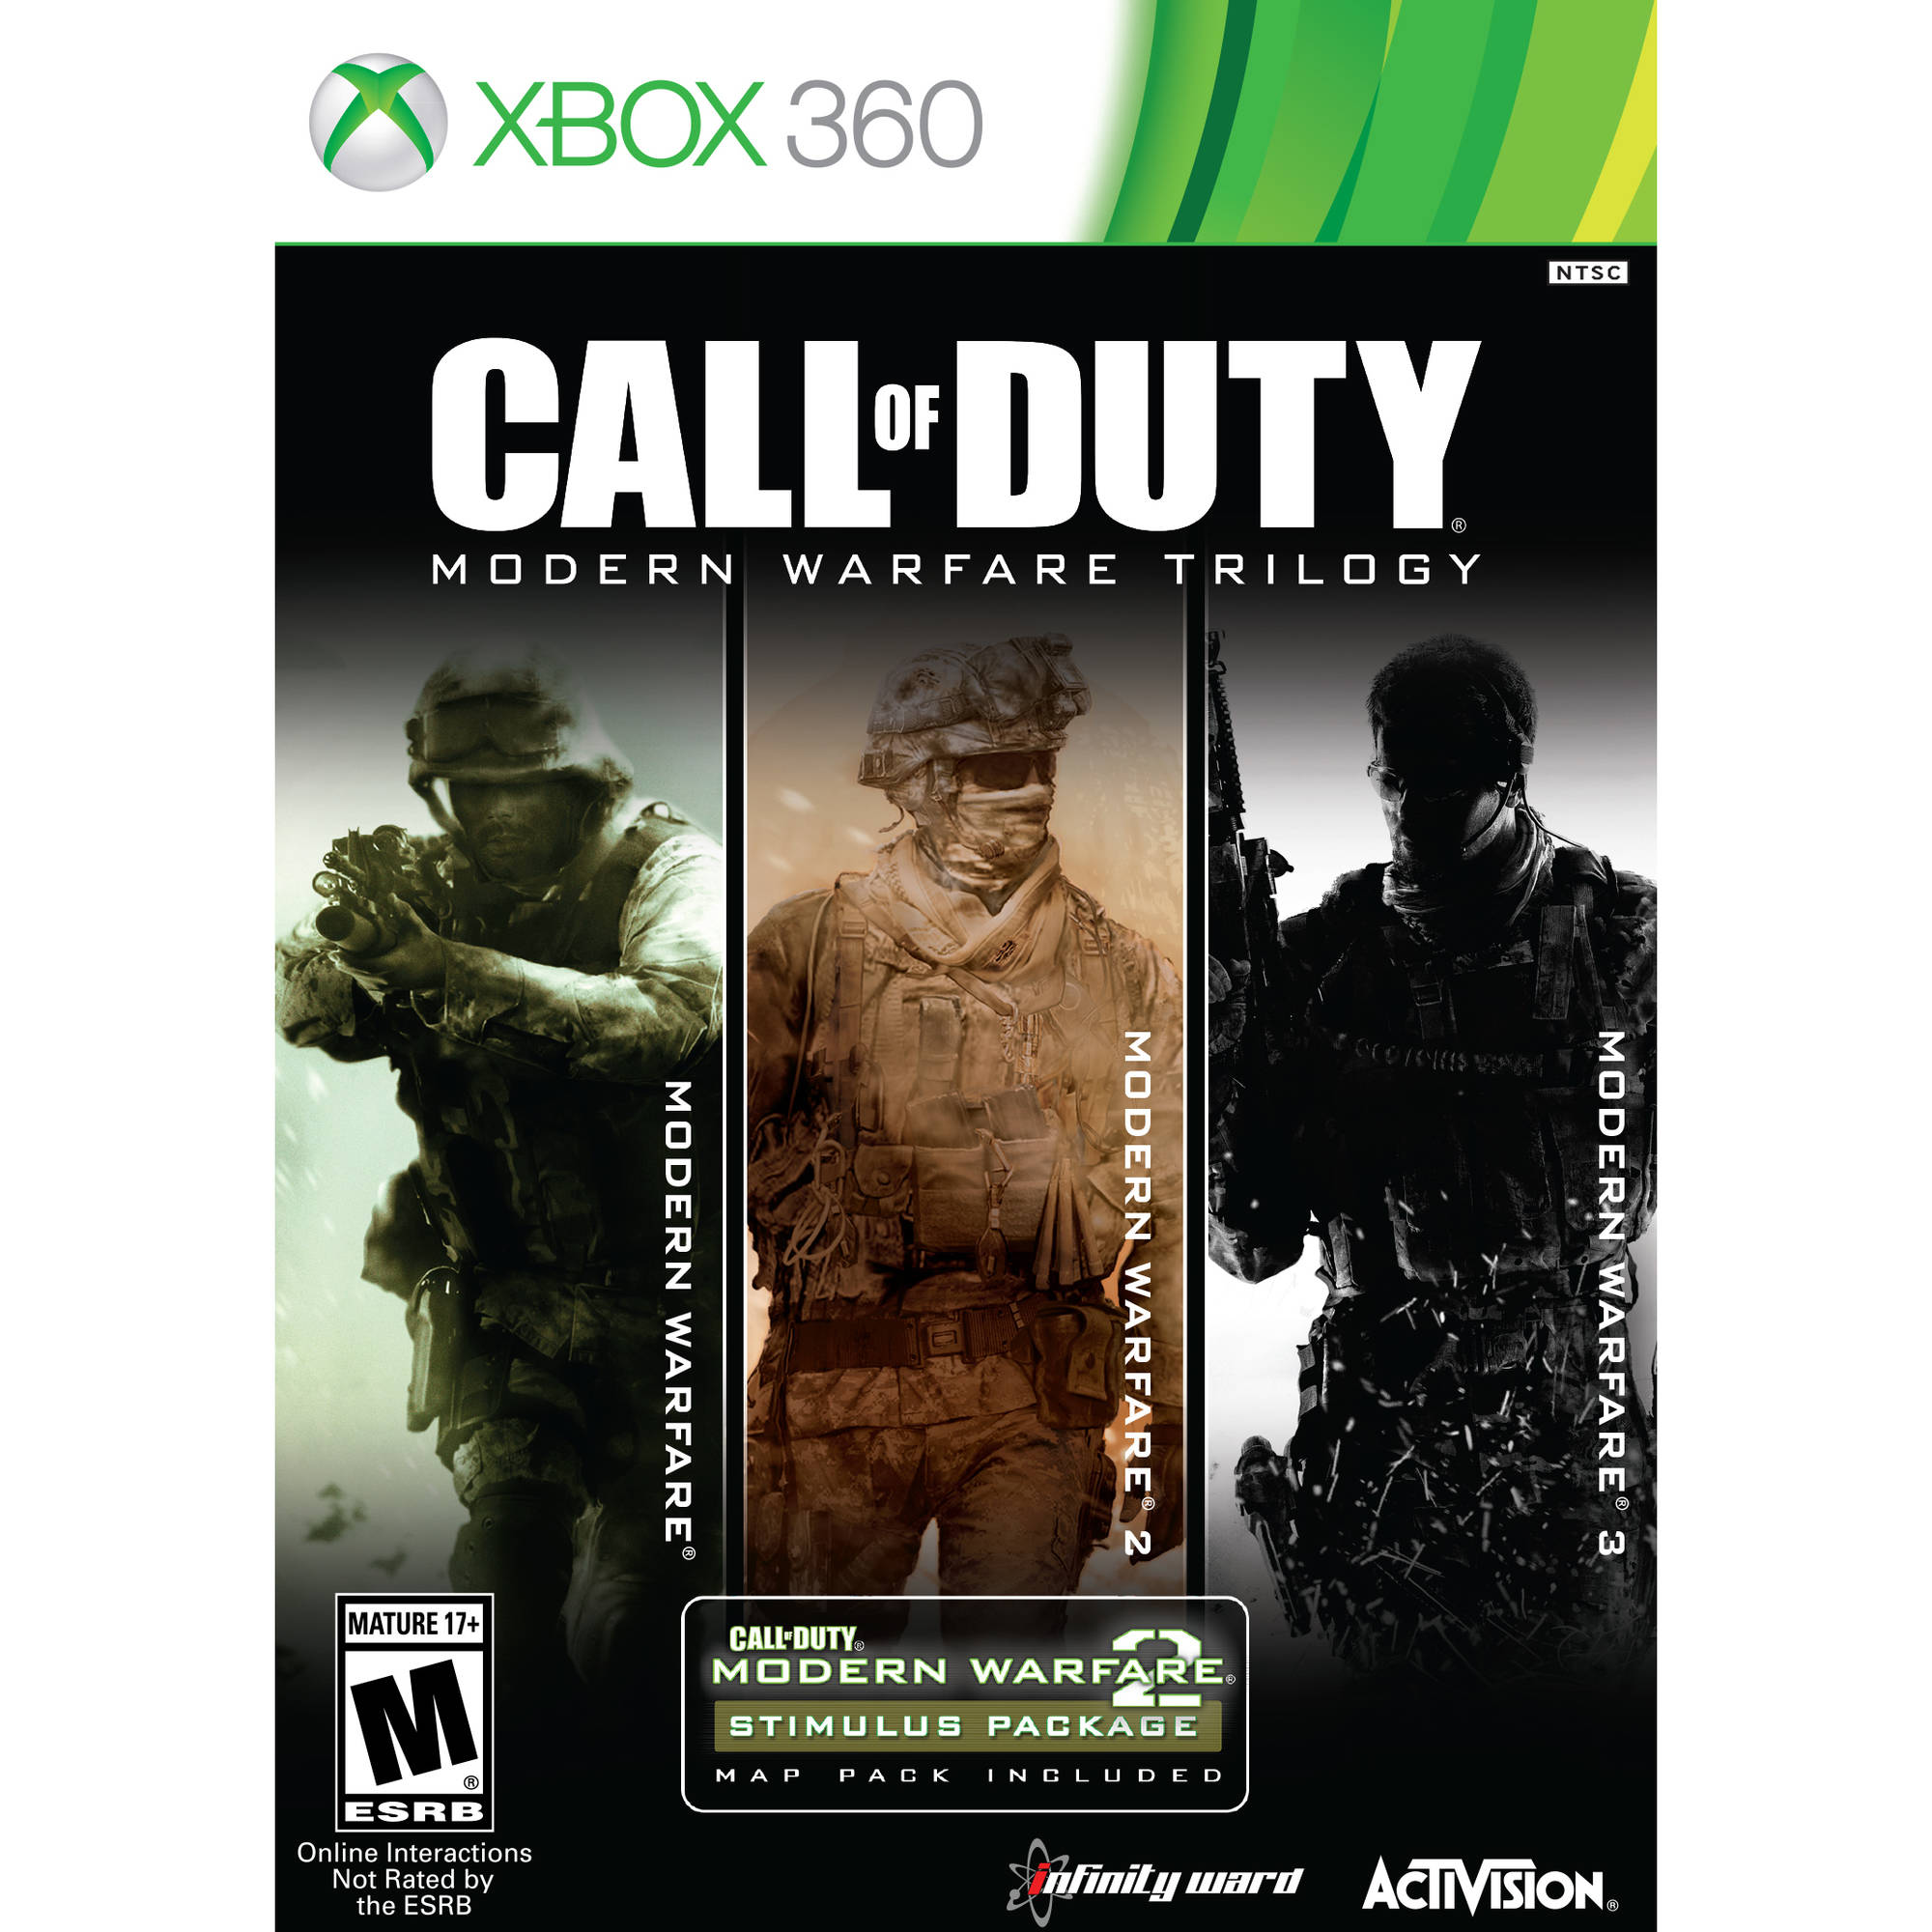 Call of Duty Modern Warfare Trilogy (Xbox 360)